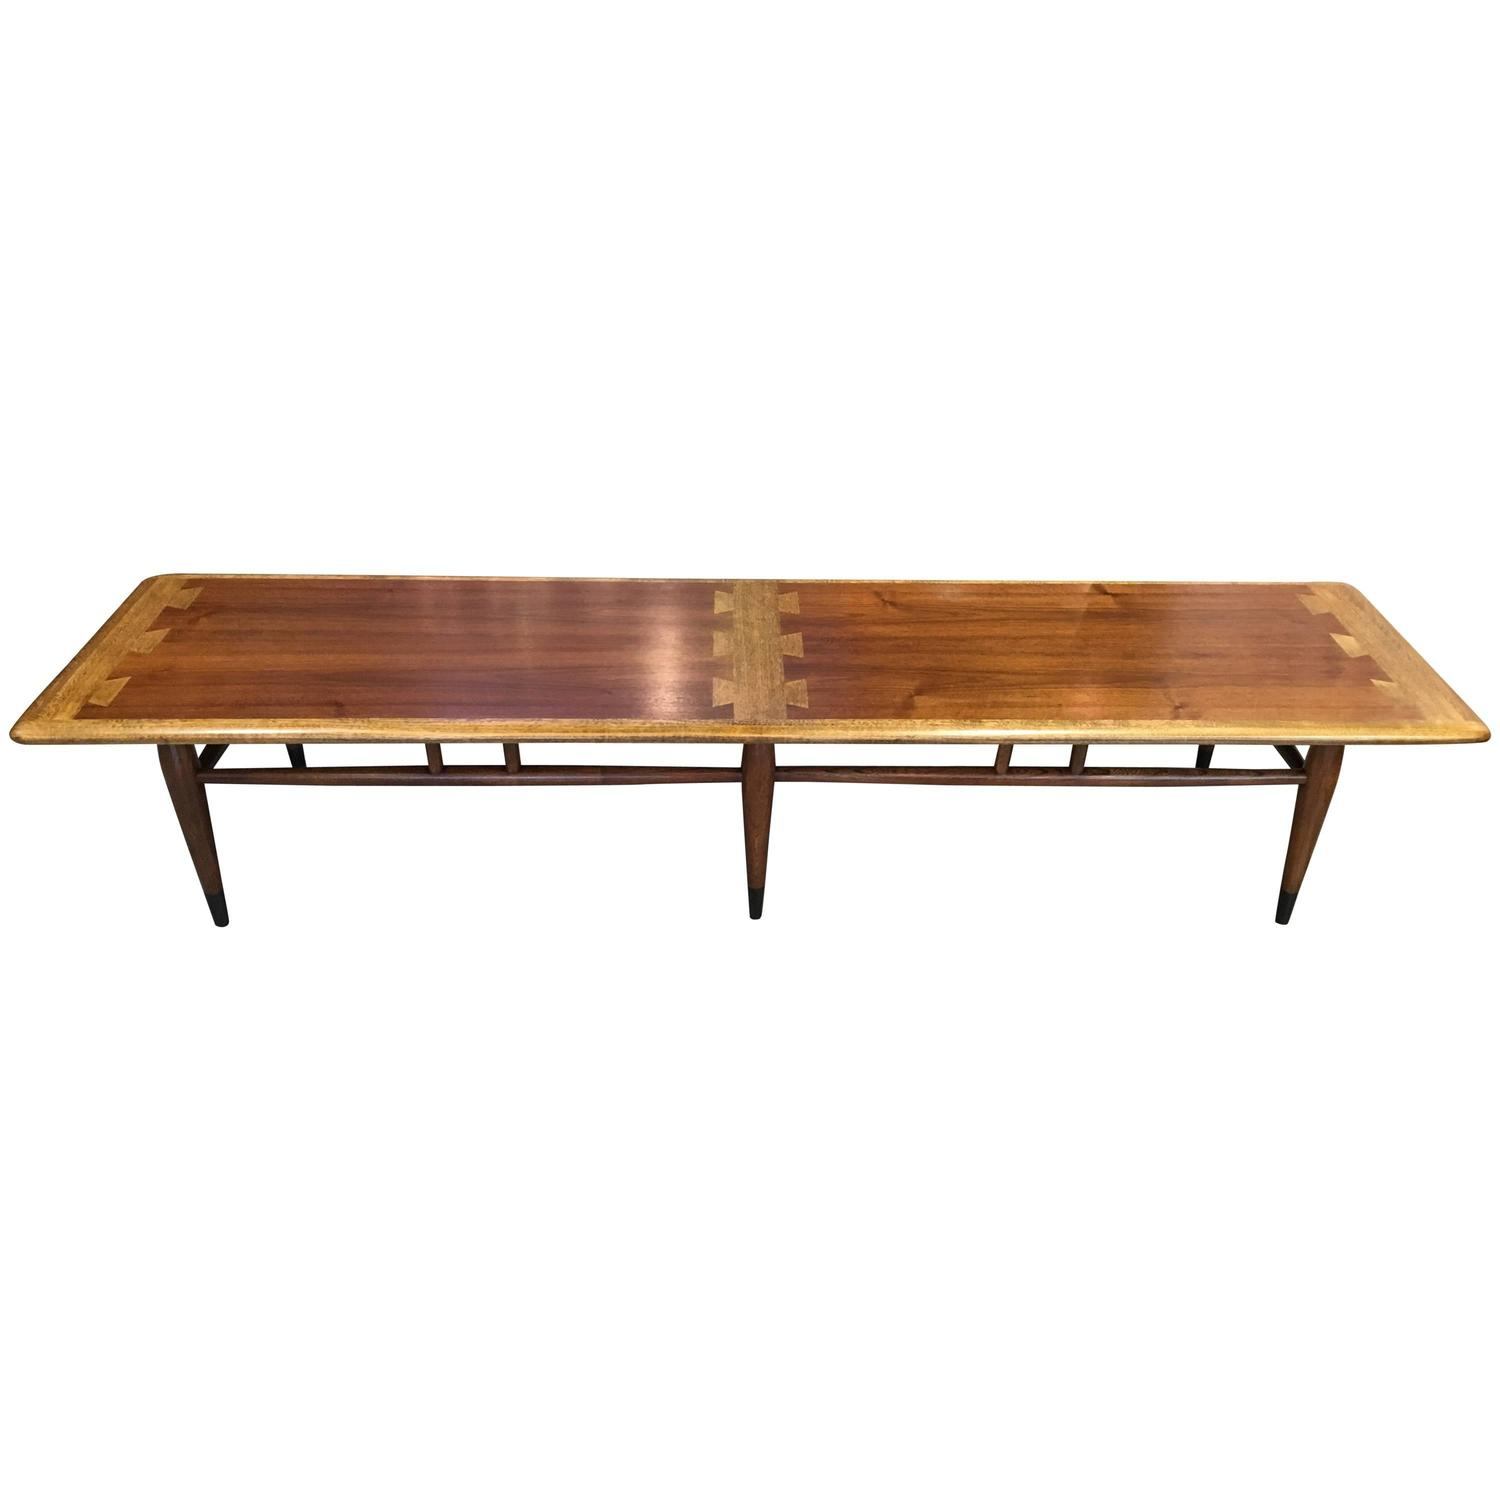 Exceptionnel Extra Long Lane Dovetail Coffee Table For Sale At 1stdibs